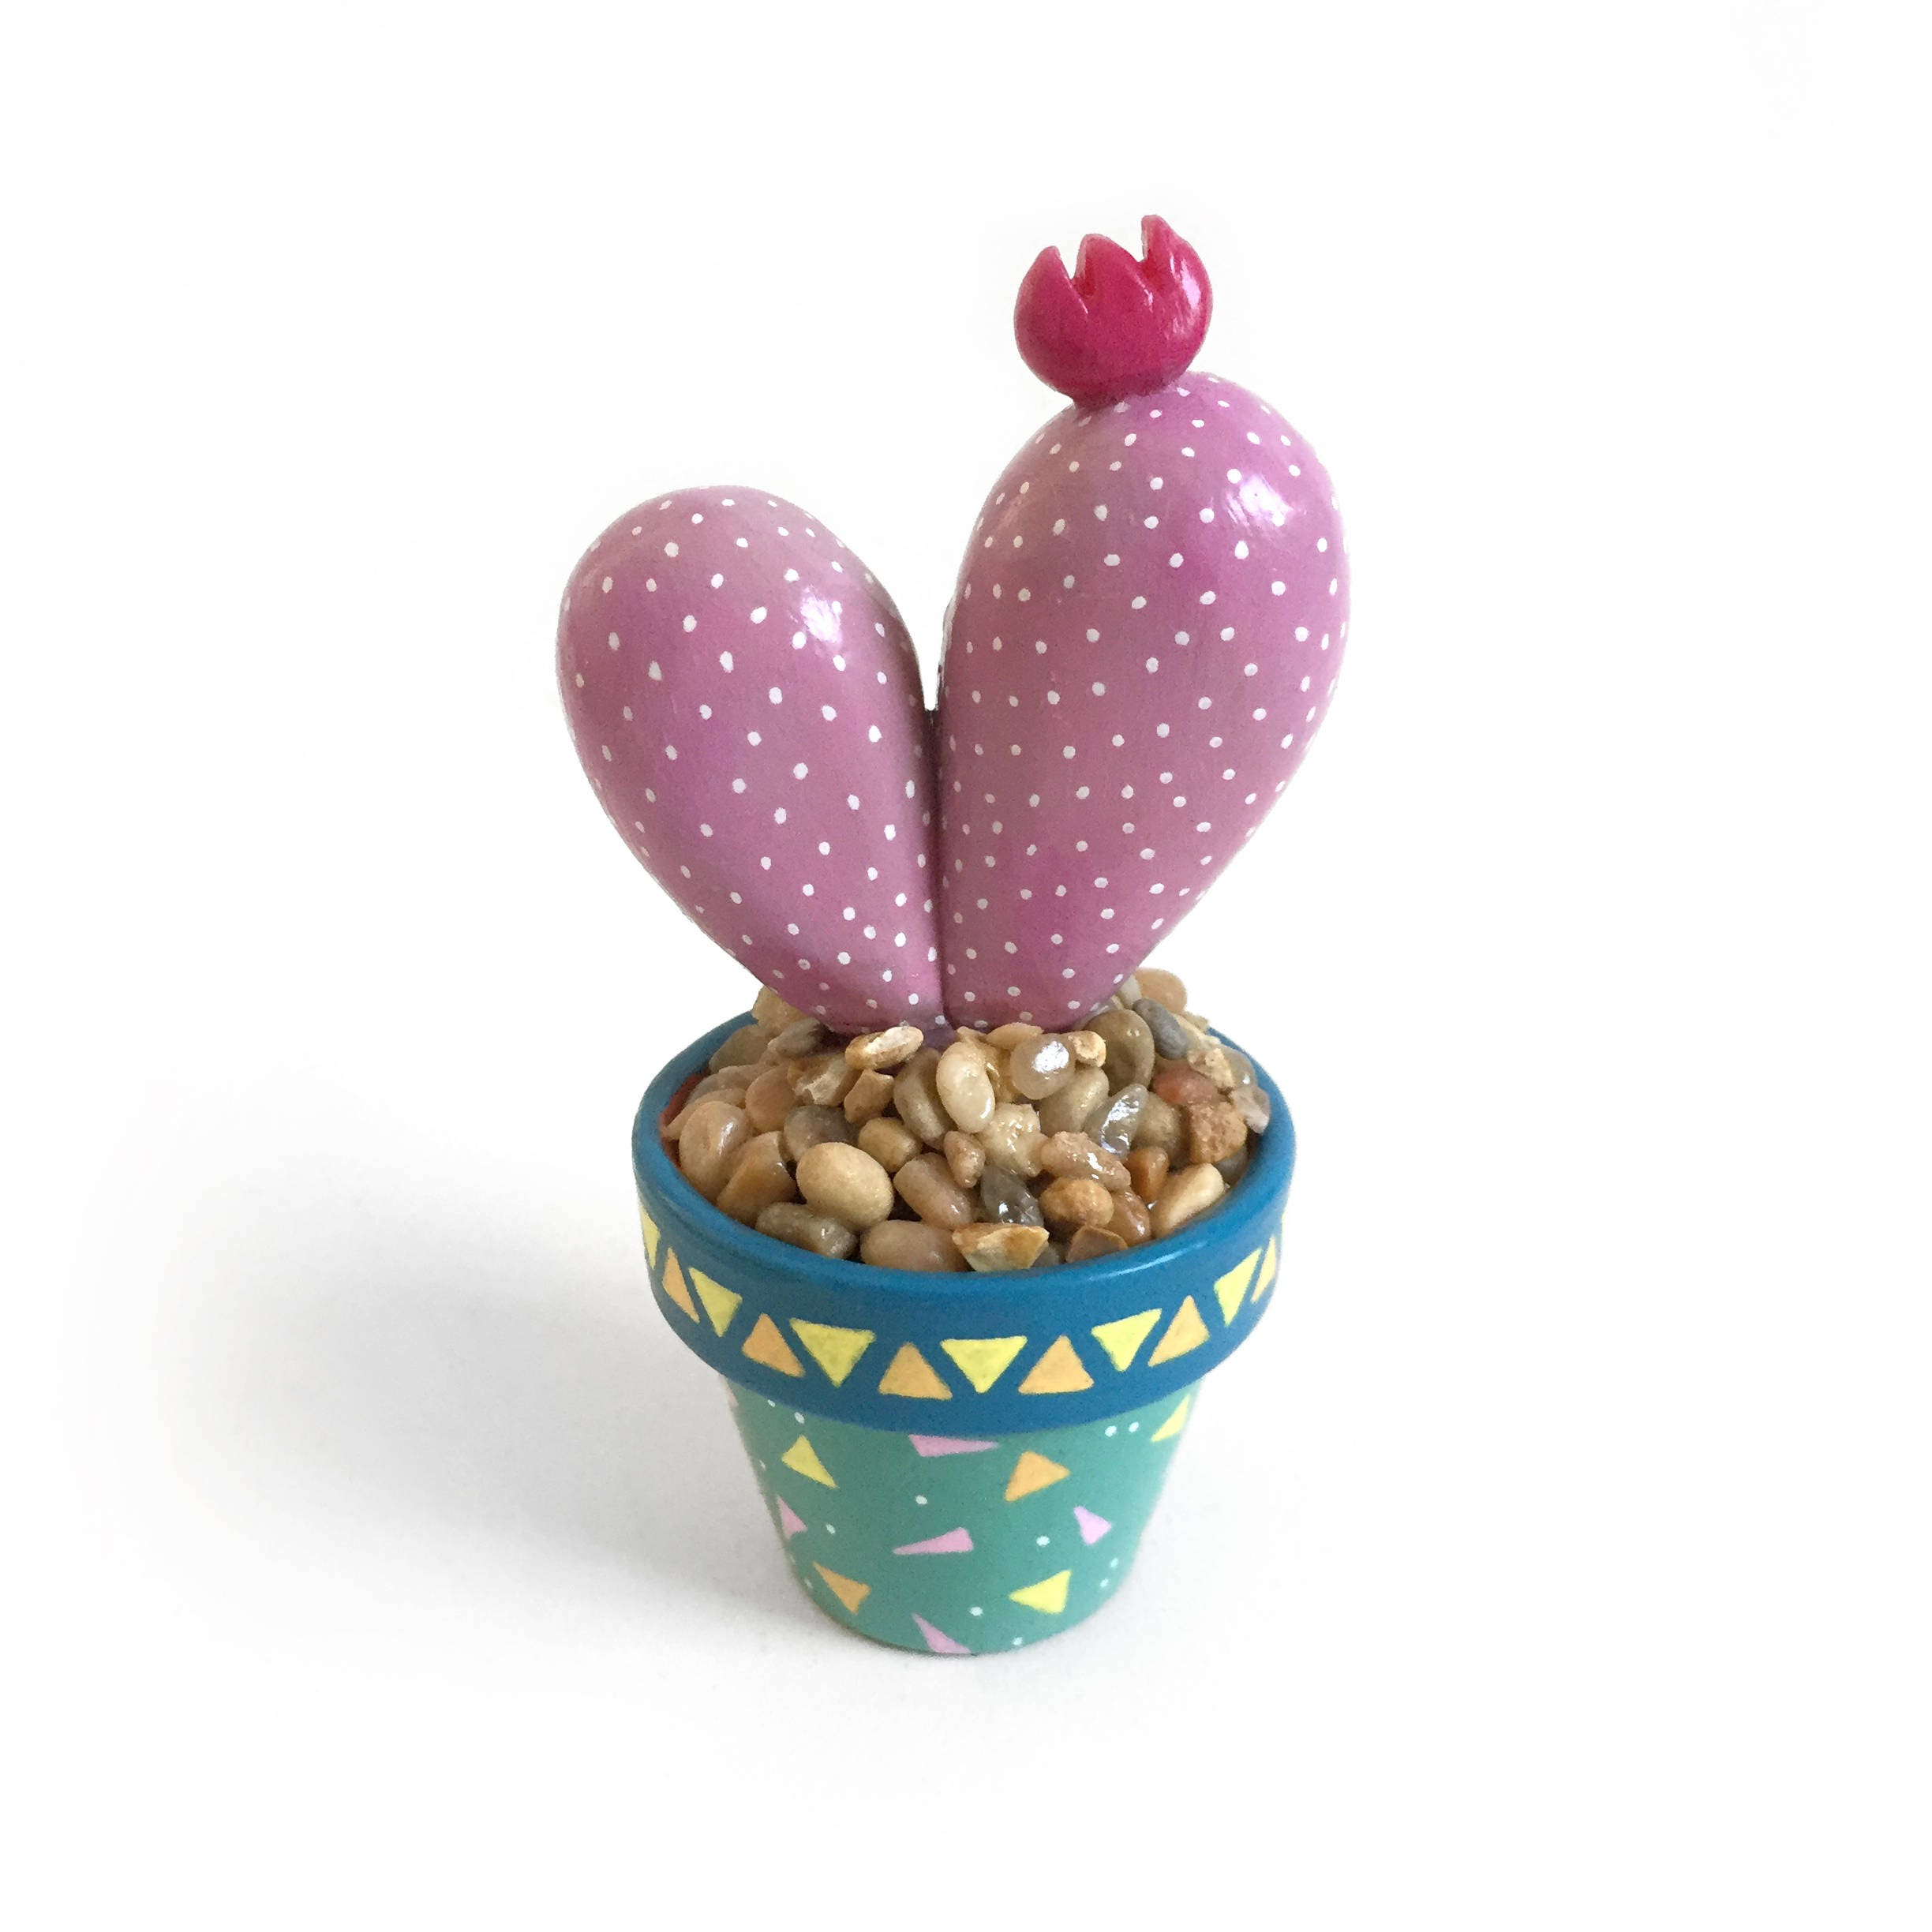 Miniature Cactus Sculptures Pink Cactus With A Red Flower In